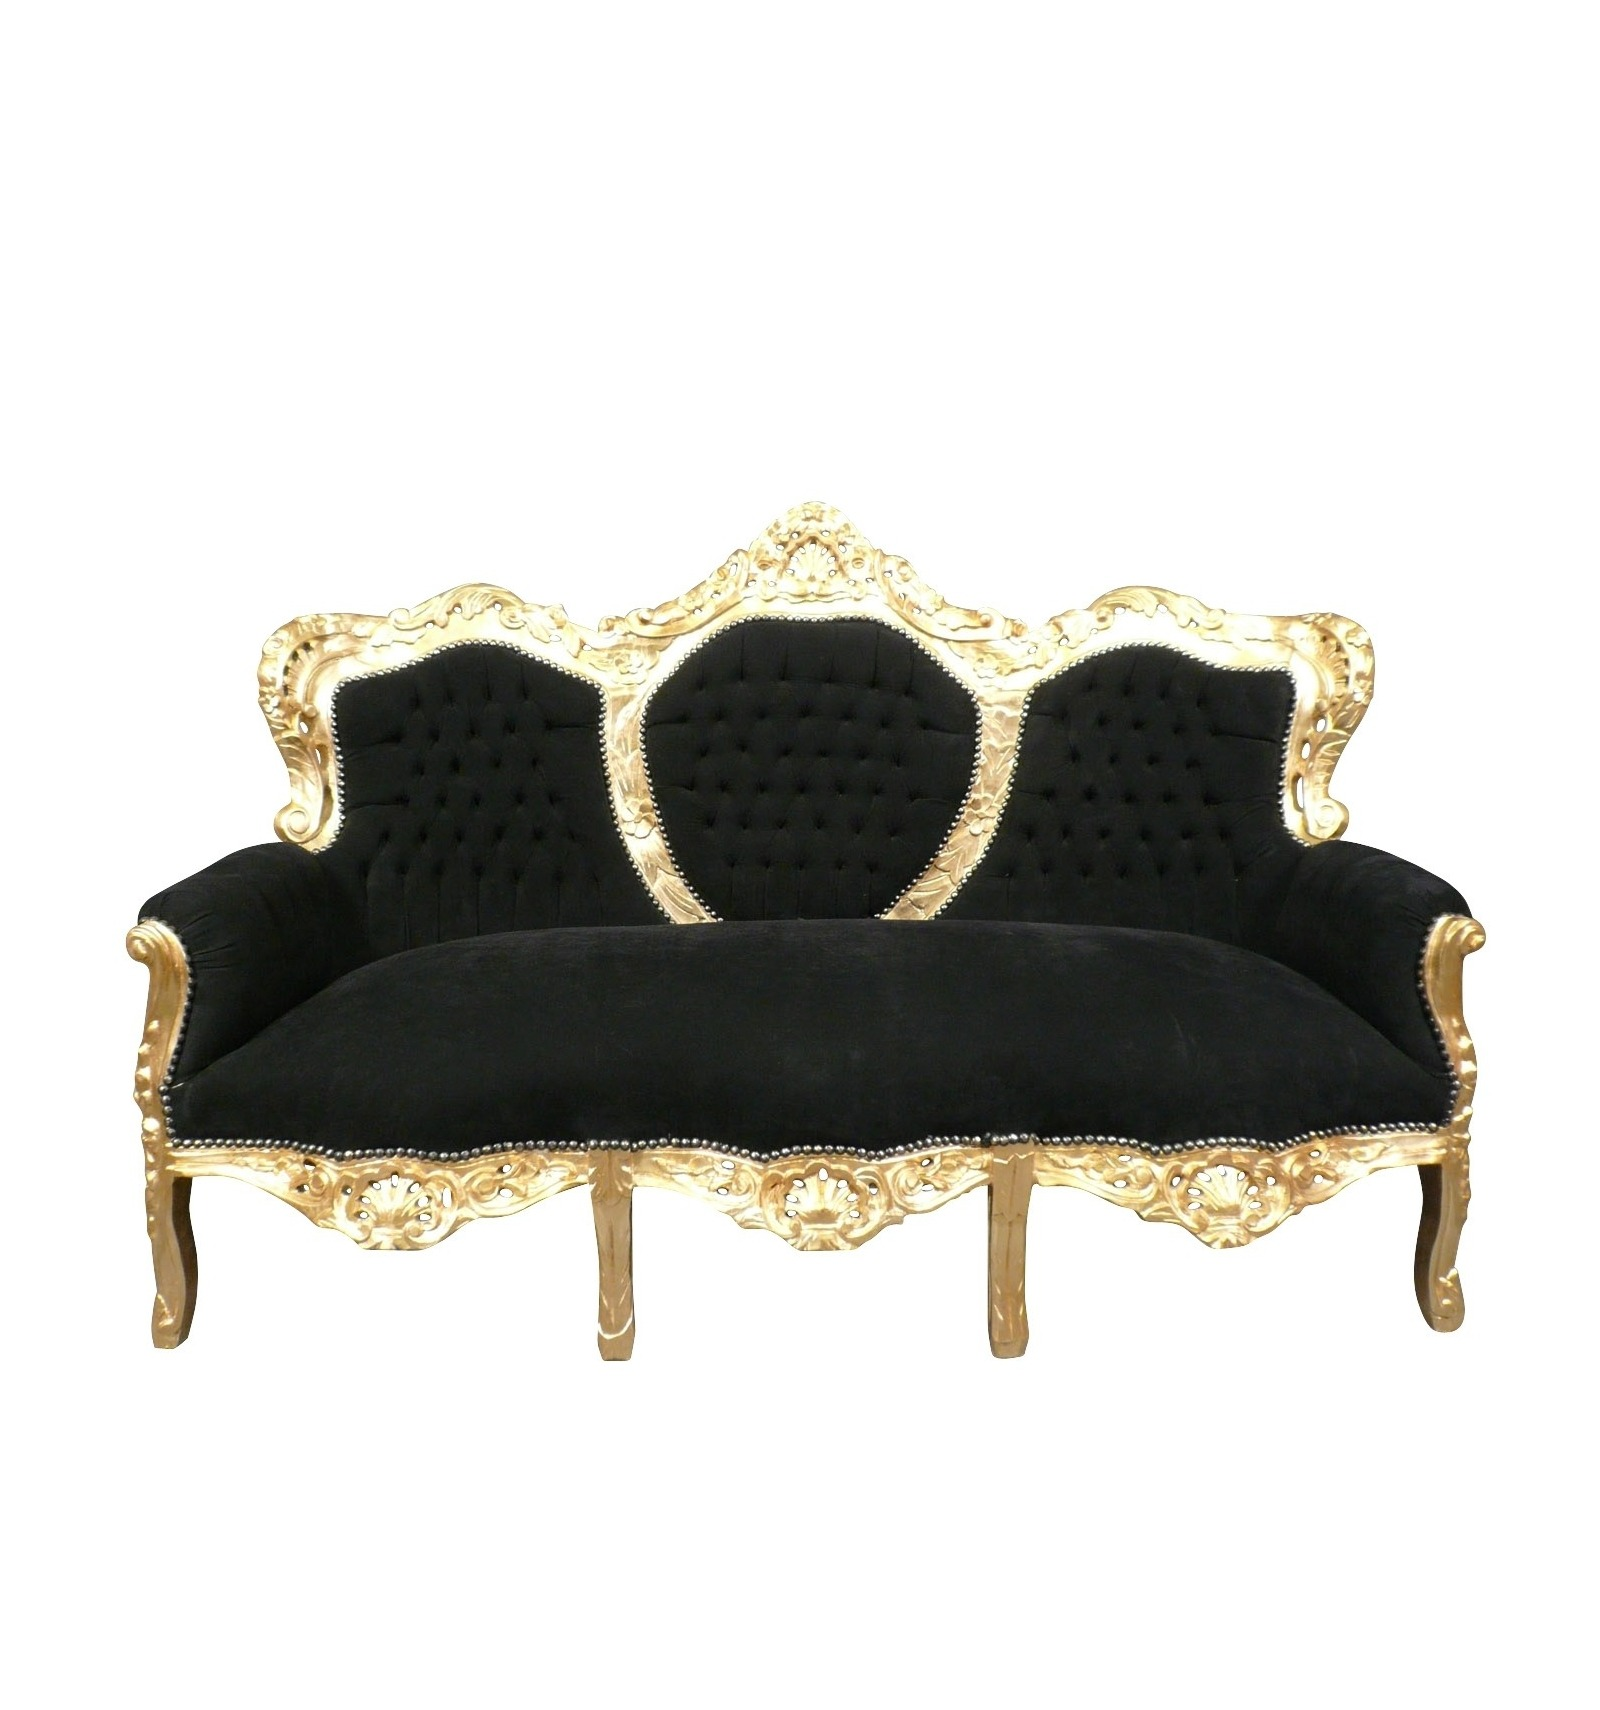 schwarz und gold barock sofa. Black Bedroom Furniture Sets. Home Design Ideas